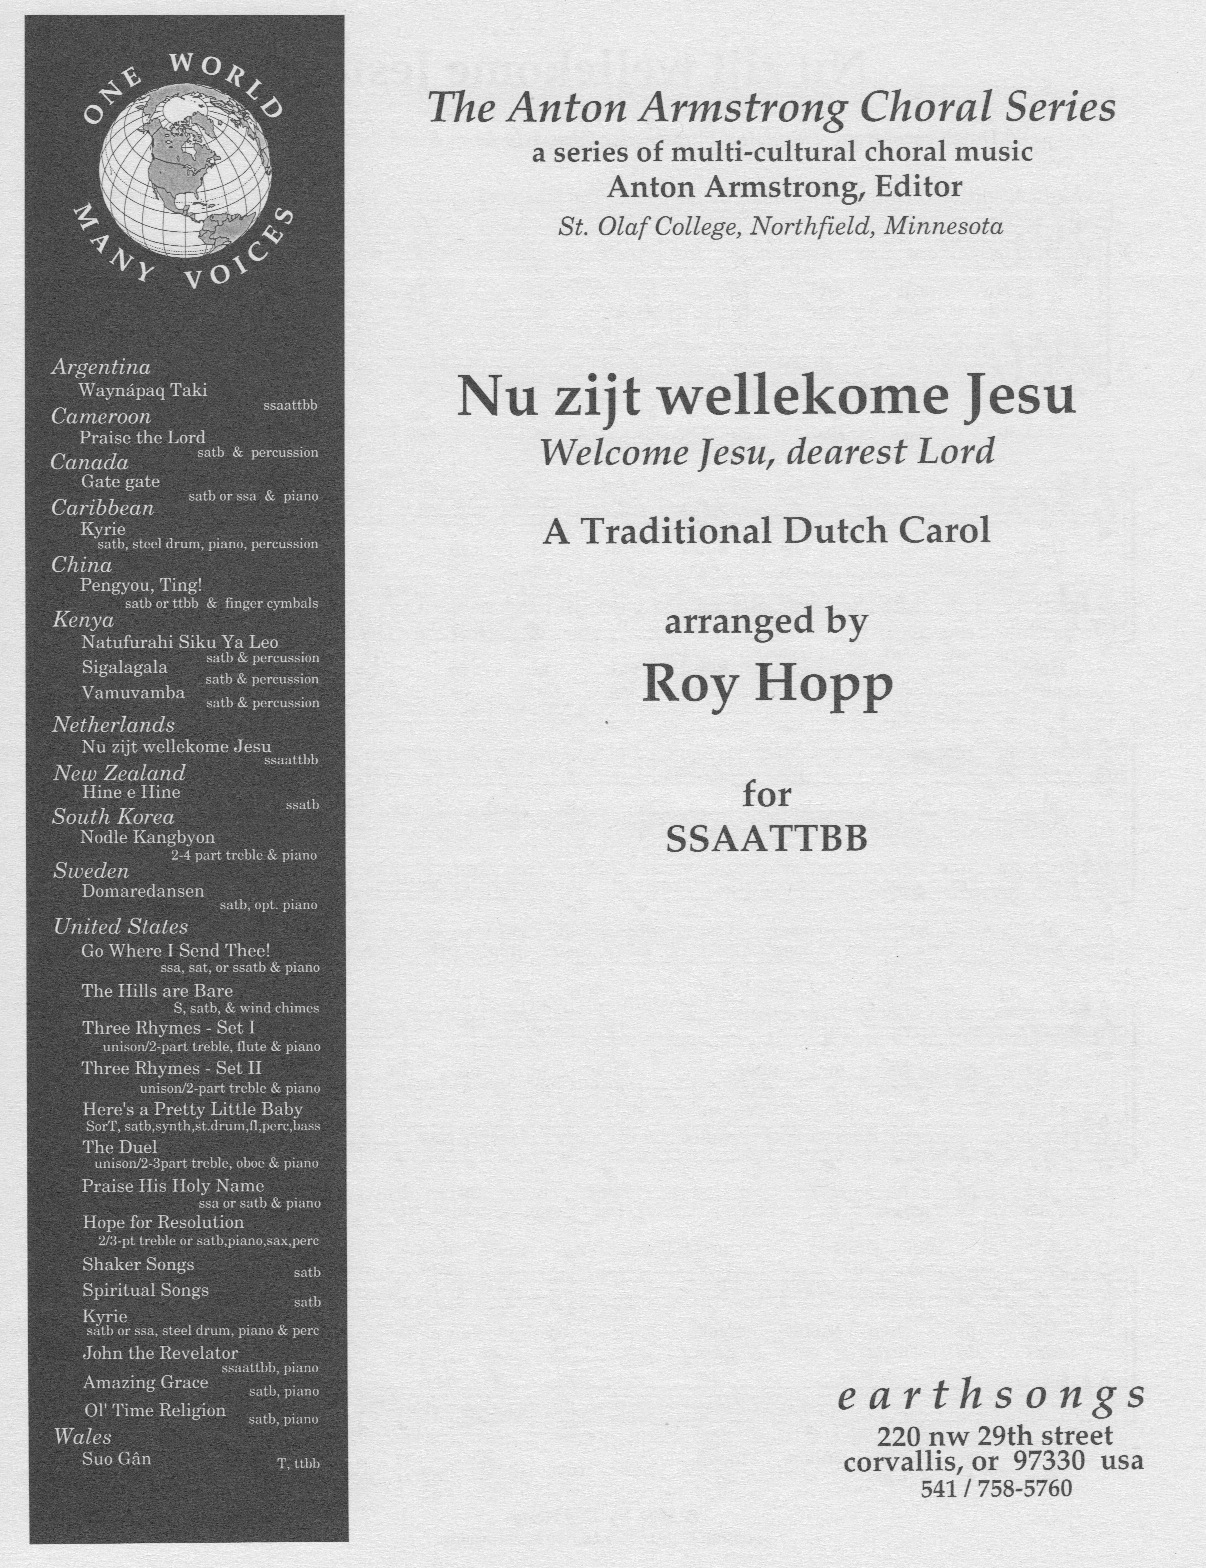 nu zijt wellekome jesu(sattbb)(pdf if ordered for entire choir)